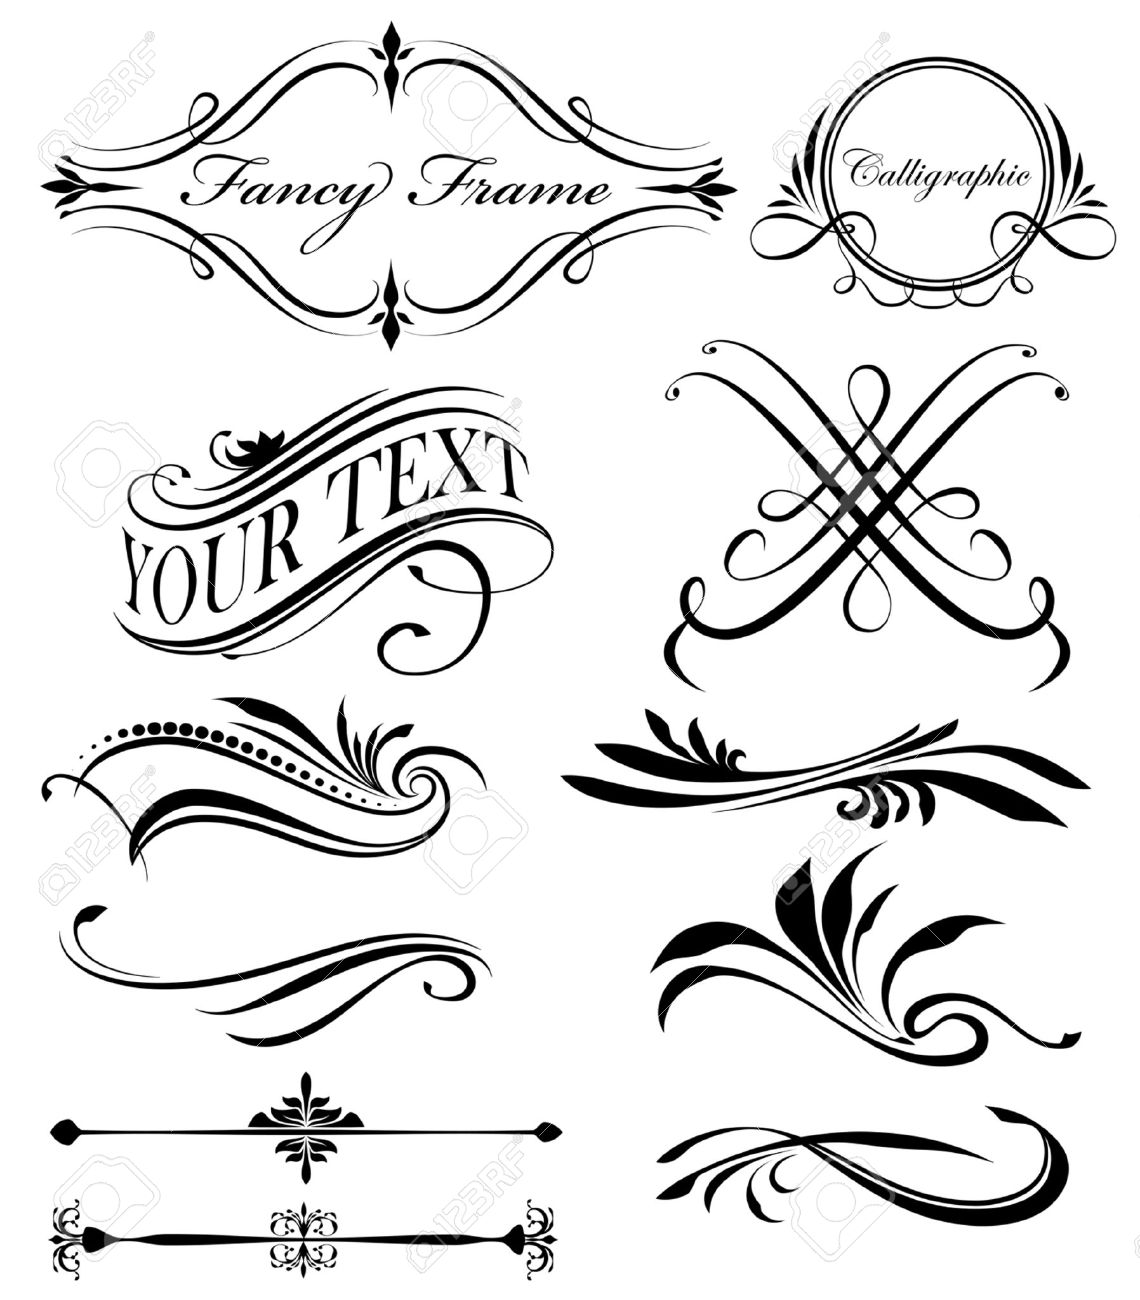 Fancy Swirls Page Spacers Dividers Stock Vector